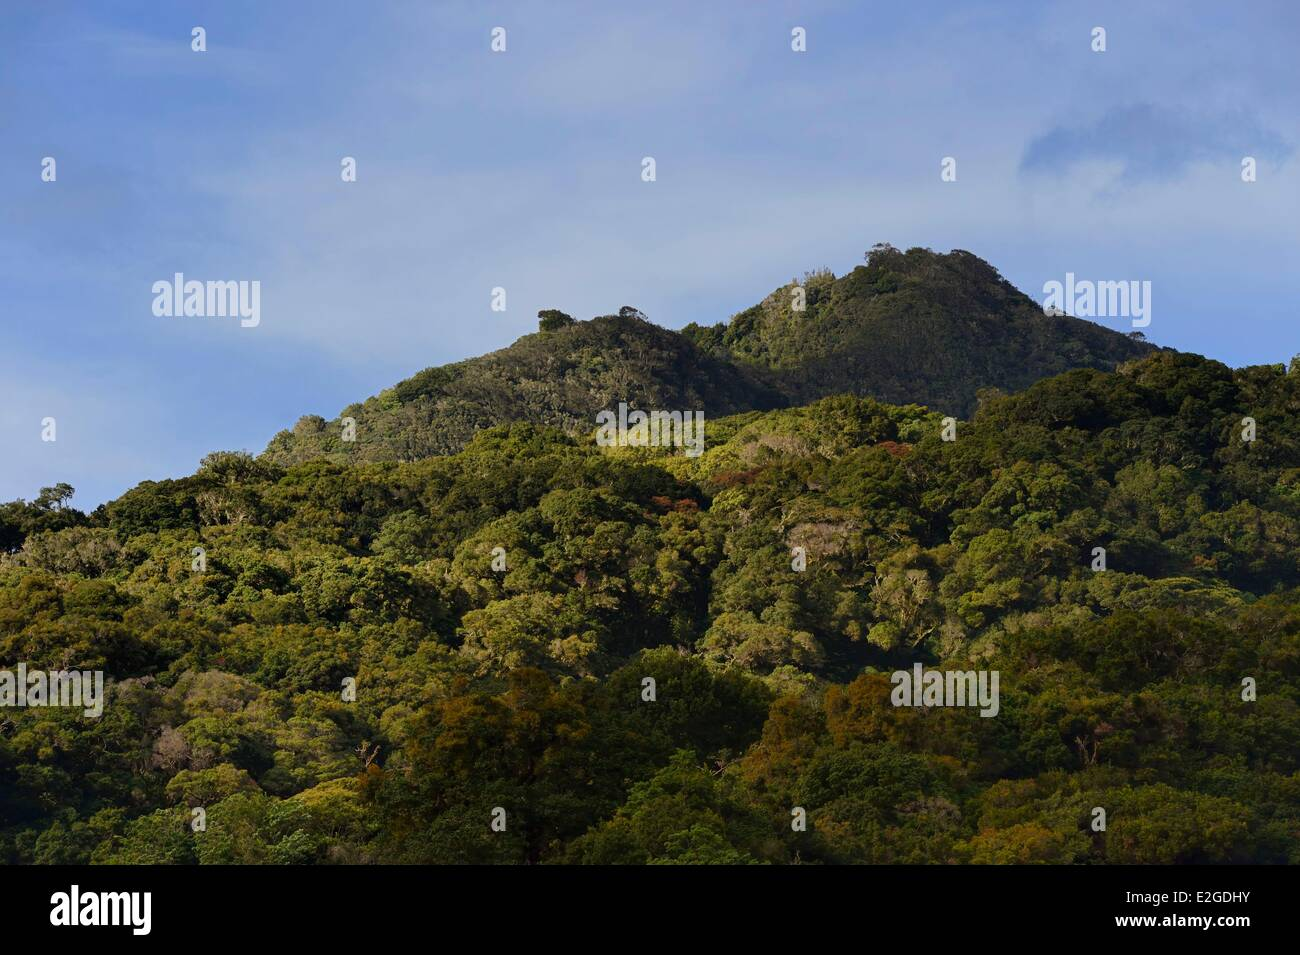 Panama Chiriqui province Boquete slopes of Volcan Baru national park - Stock Image